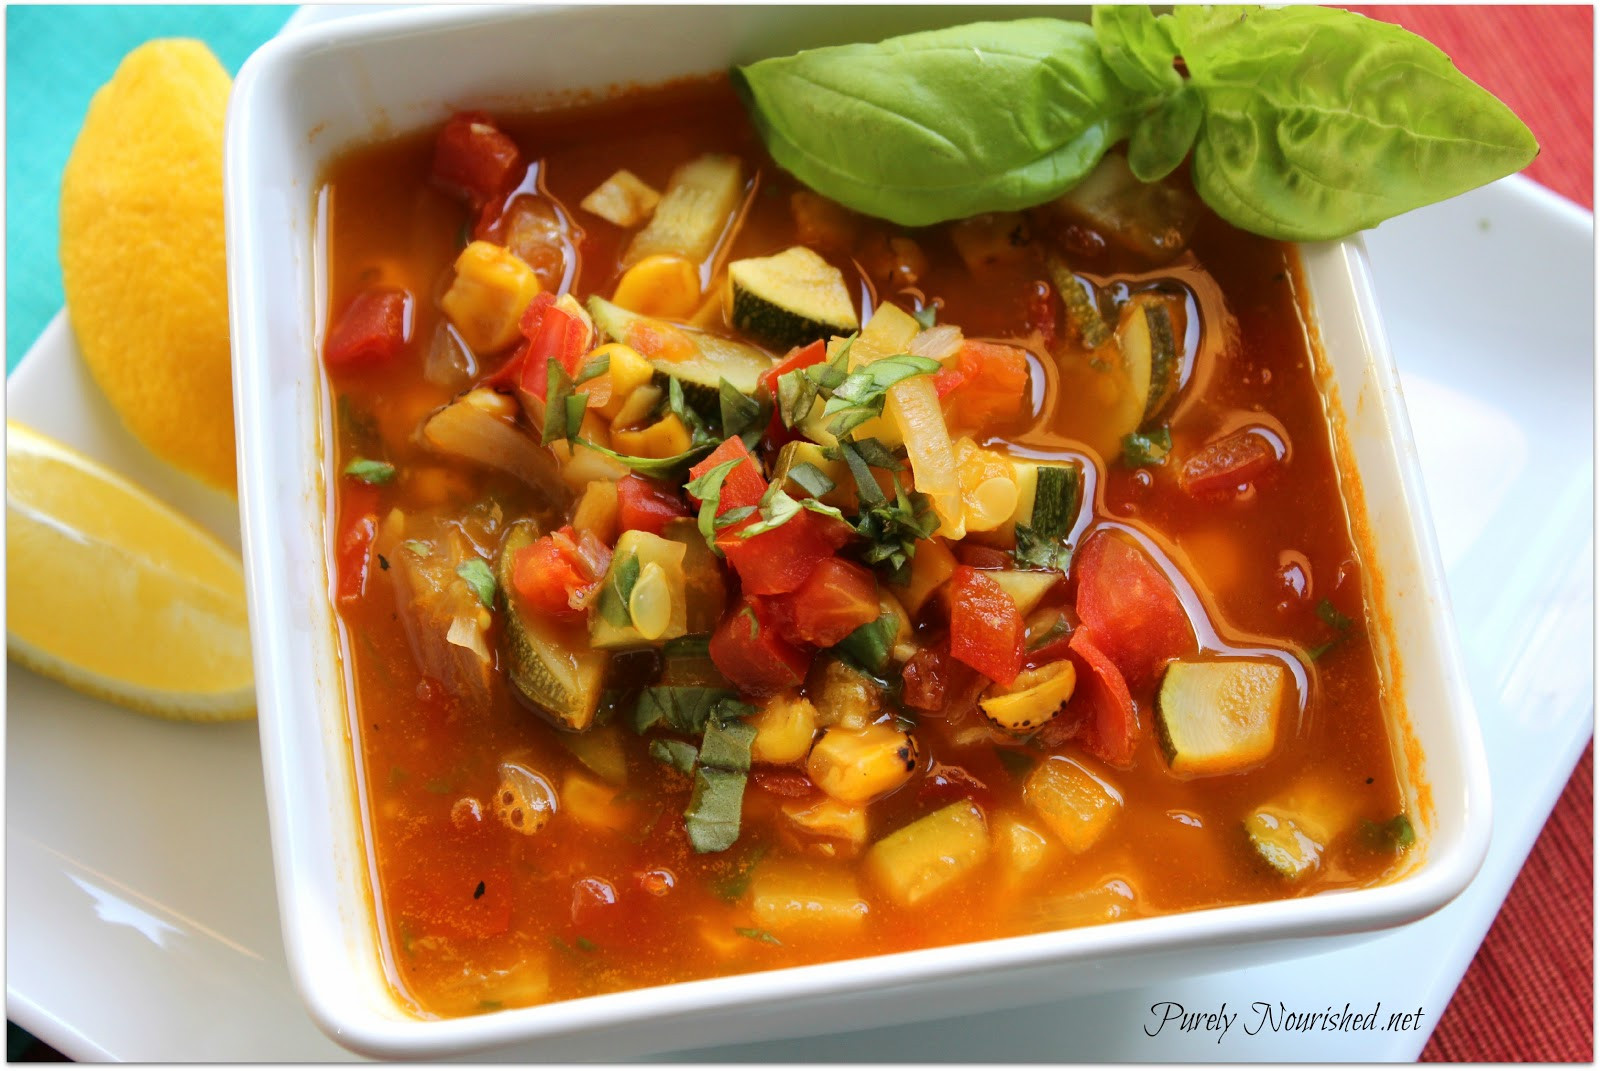 Summer Soup Recipes Vegetarian  Purely Nourished Summer Ve able Soup